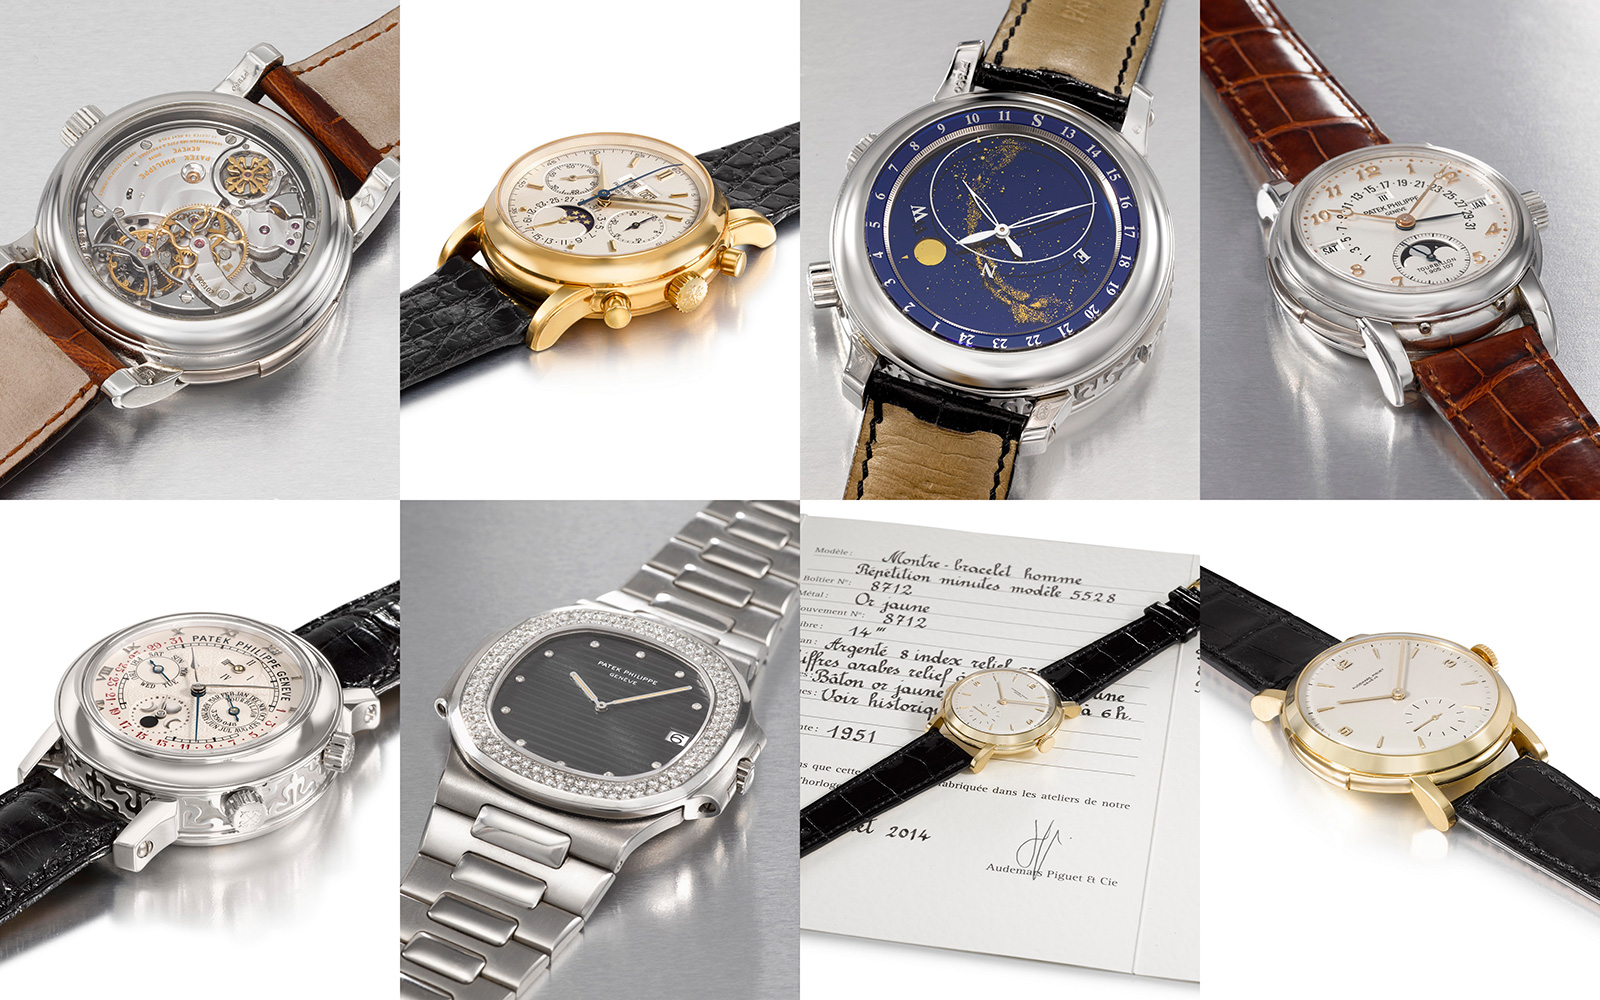 Watch Auction Geneva 2015: Christie's Important watches